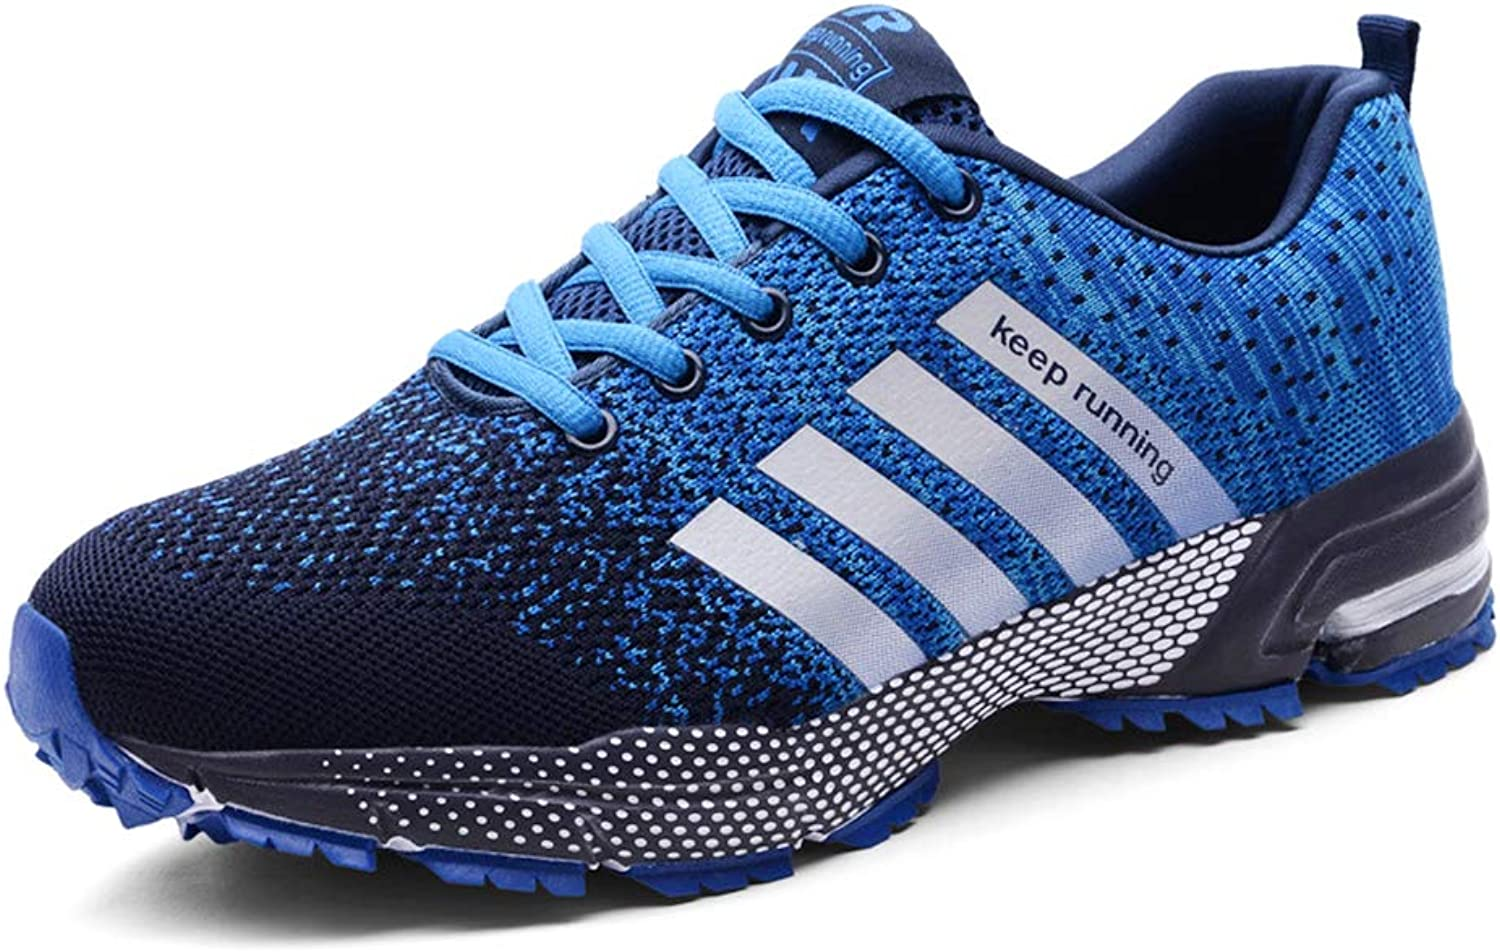 Unisex Sports shoes, Breathable Lightweight Trainer Fitness Running shoes, Jogging, on Foot,bluee,37